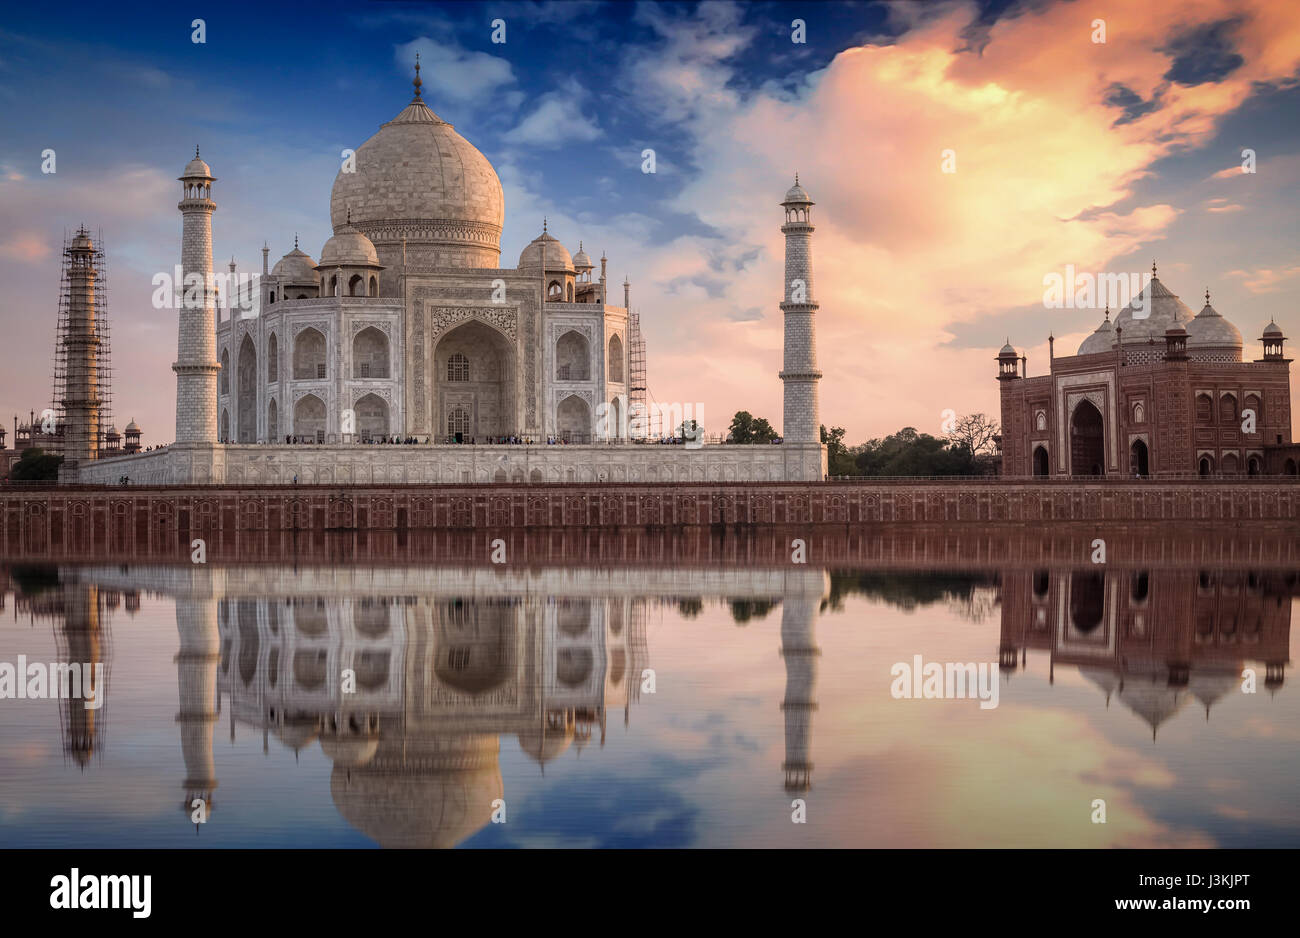 Taj Mahal sunset view from the banks of Yamuna river. Taj Mahal is a white marble mausoleum designated as a UNESCO - Stock Image